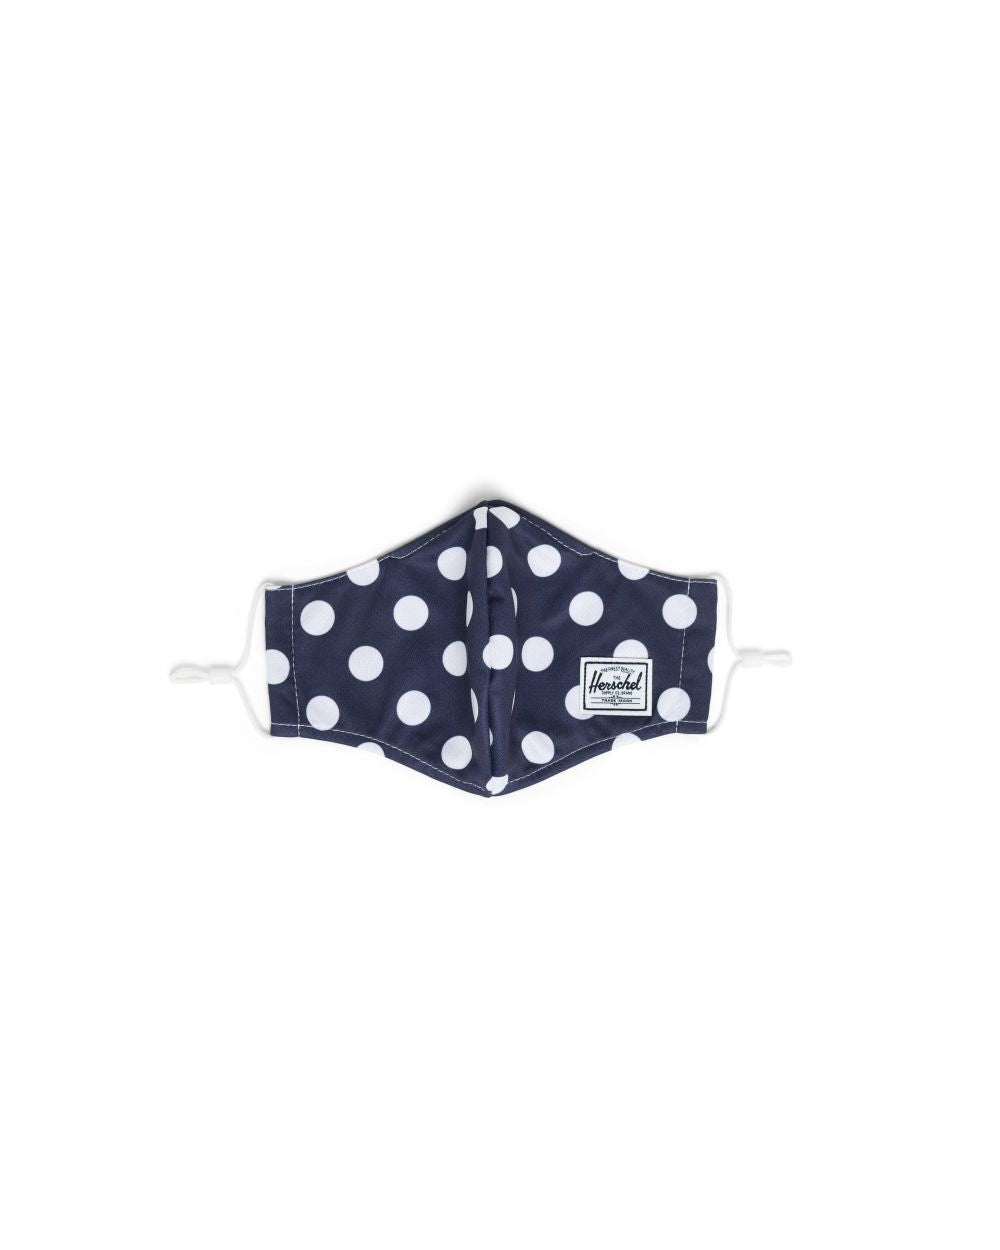 HERSCHEL MASKS CLASSIC FITTED MASK - PEACOAT POLKA DOT